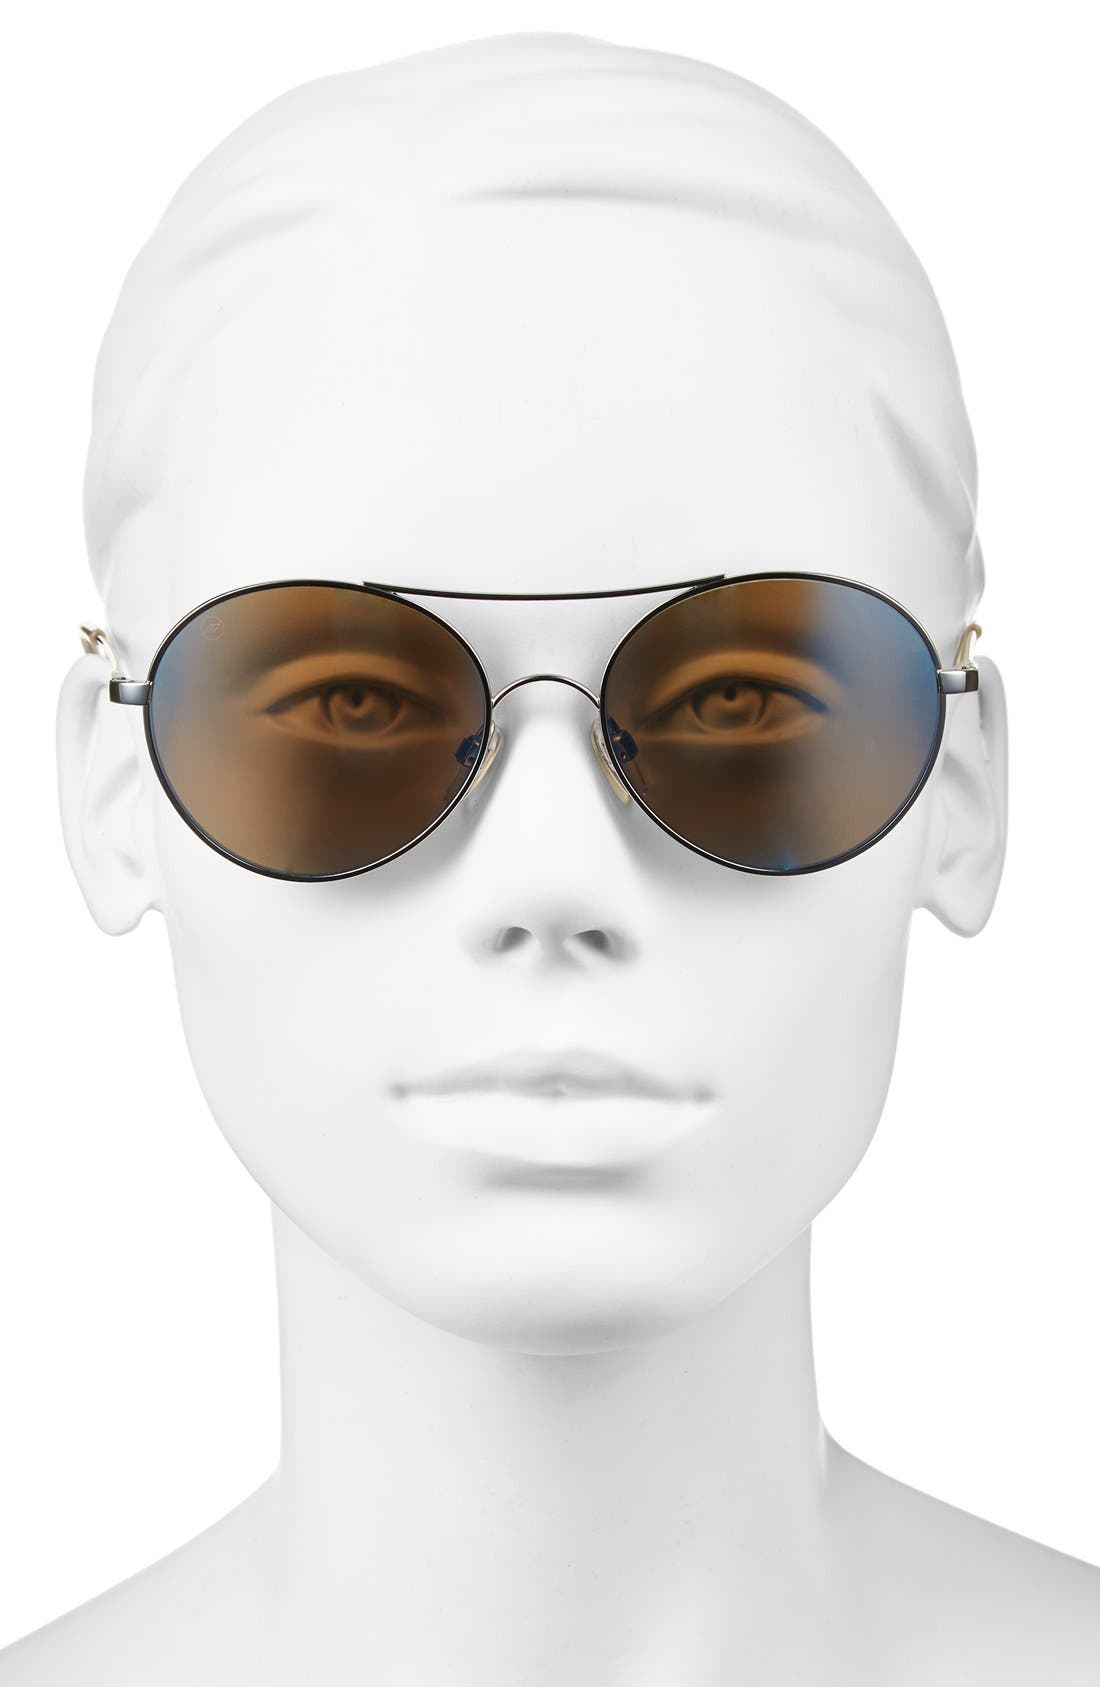 'Huxley' 53mm Round Sunglasses,                             Alternate thumbnail 2, color,                             020